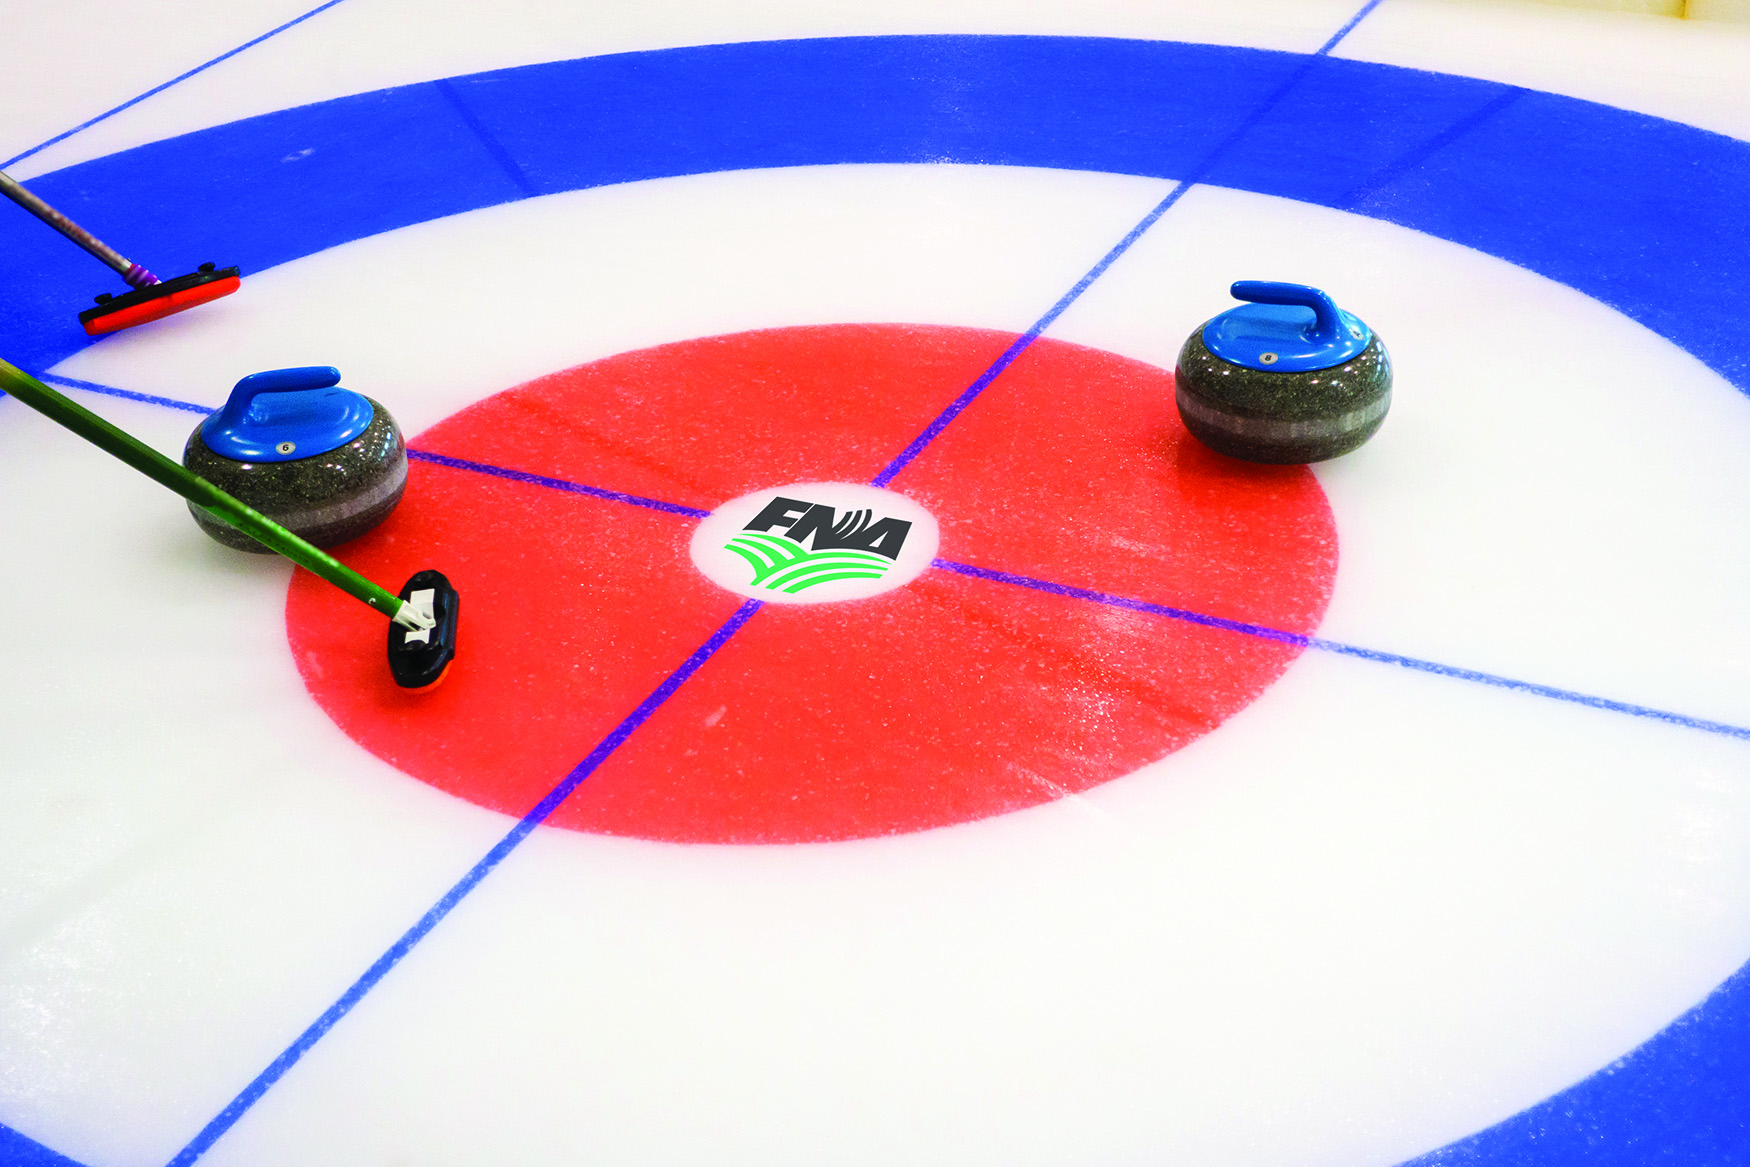 Farmers of North America supports curling